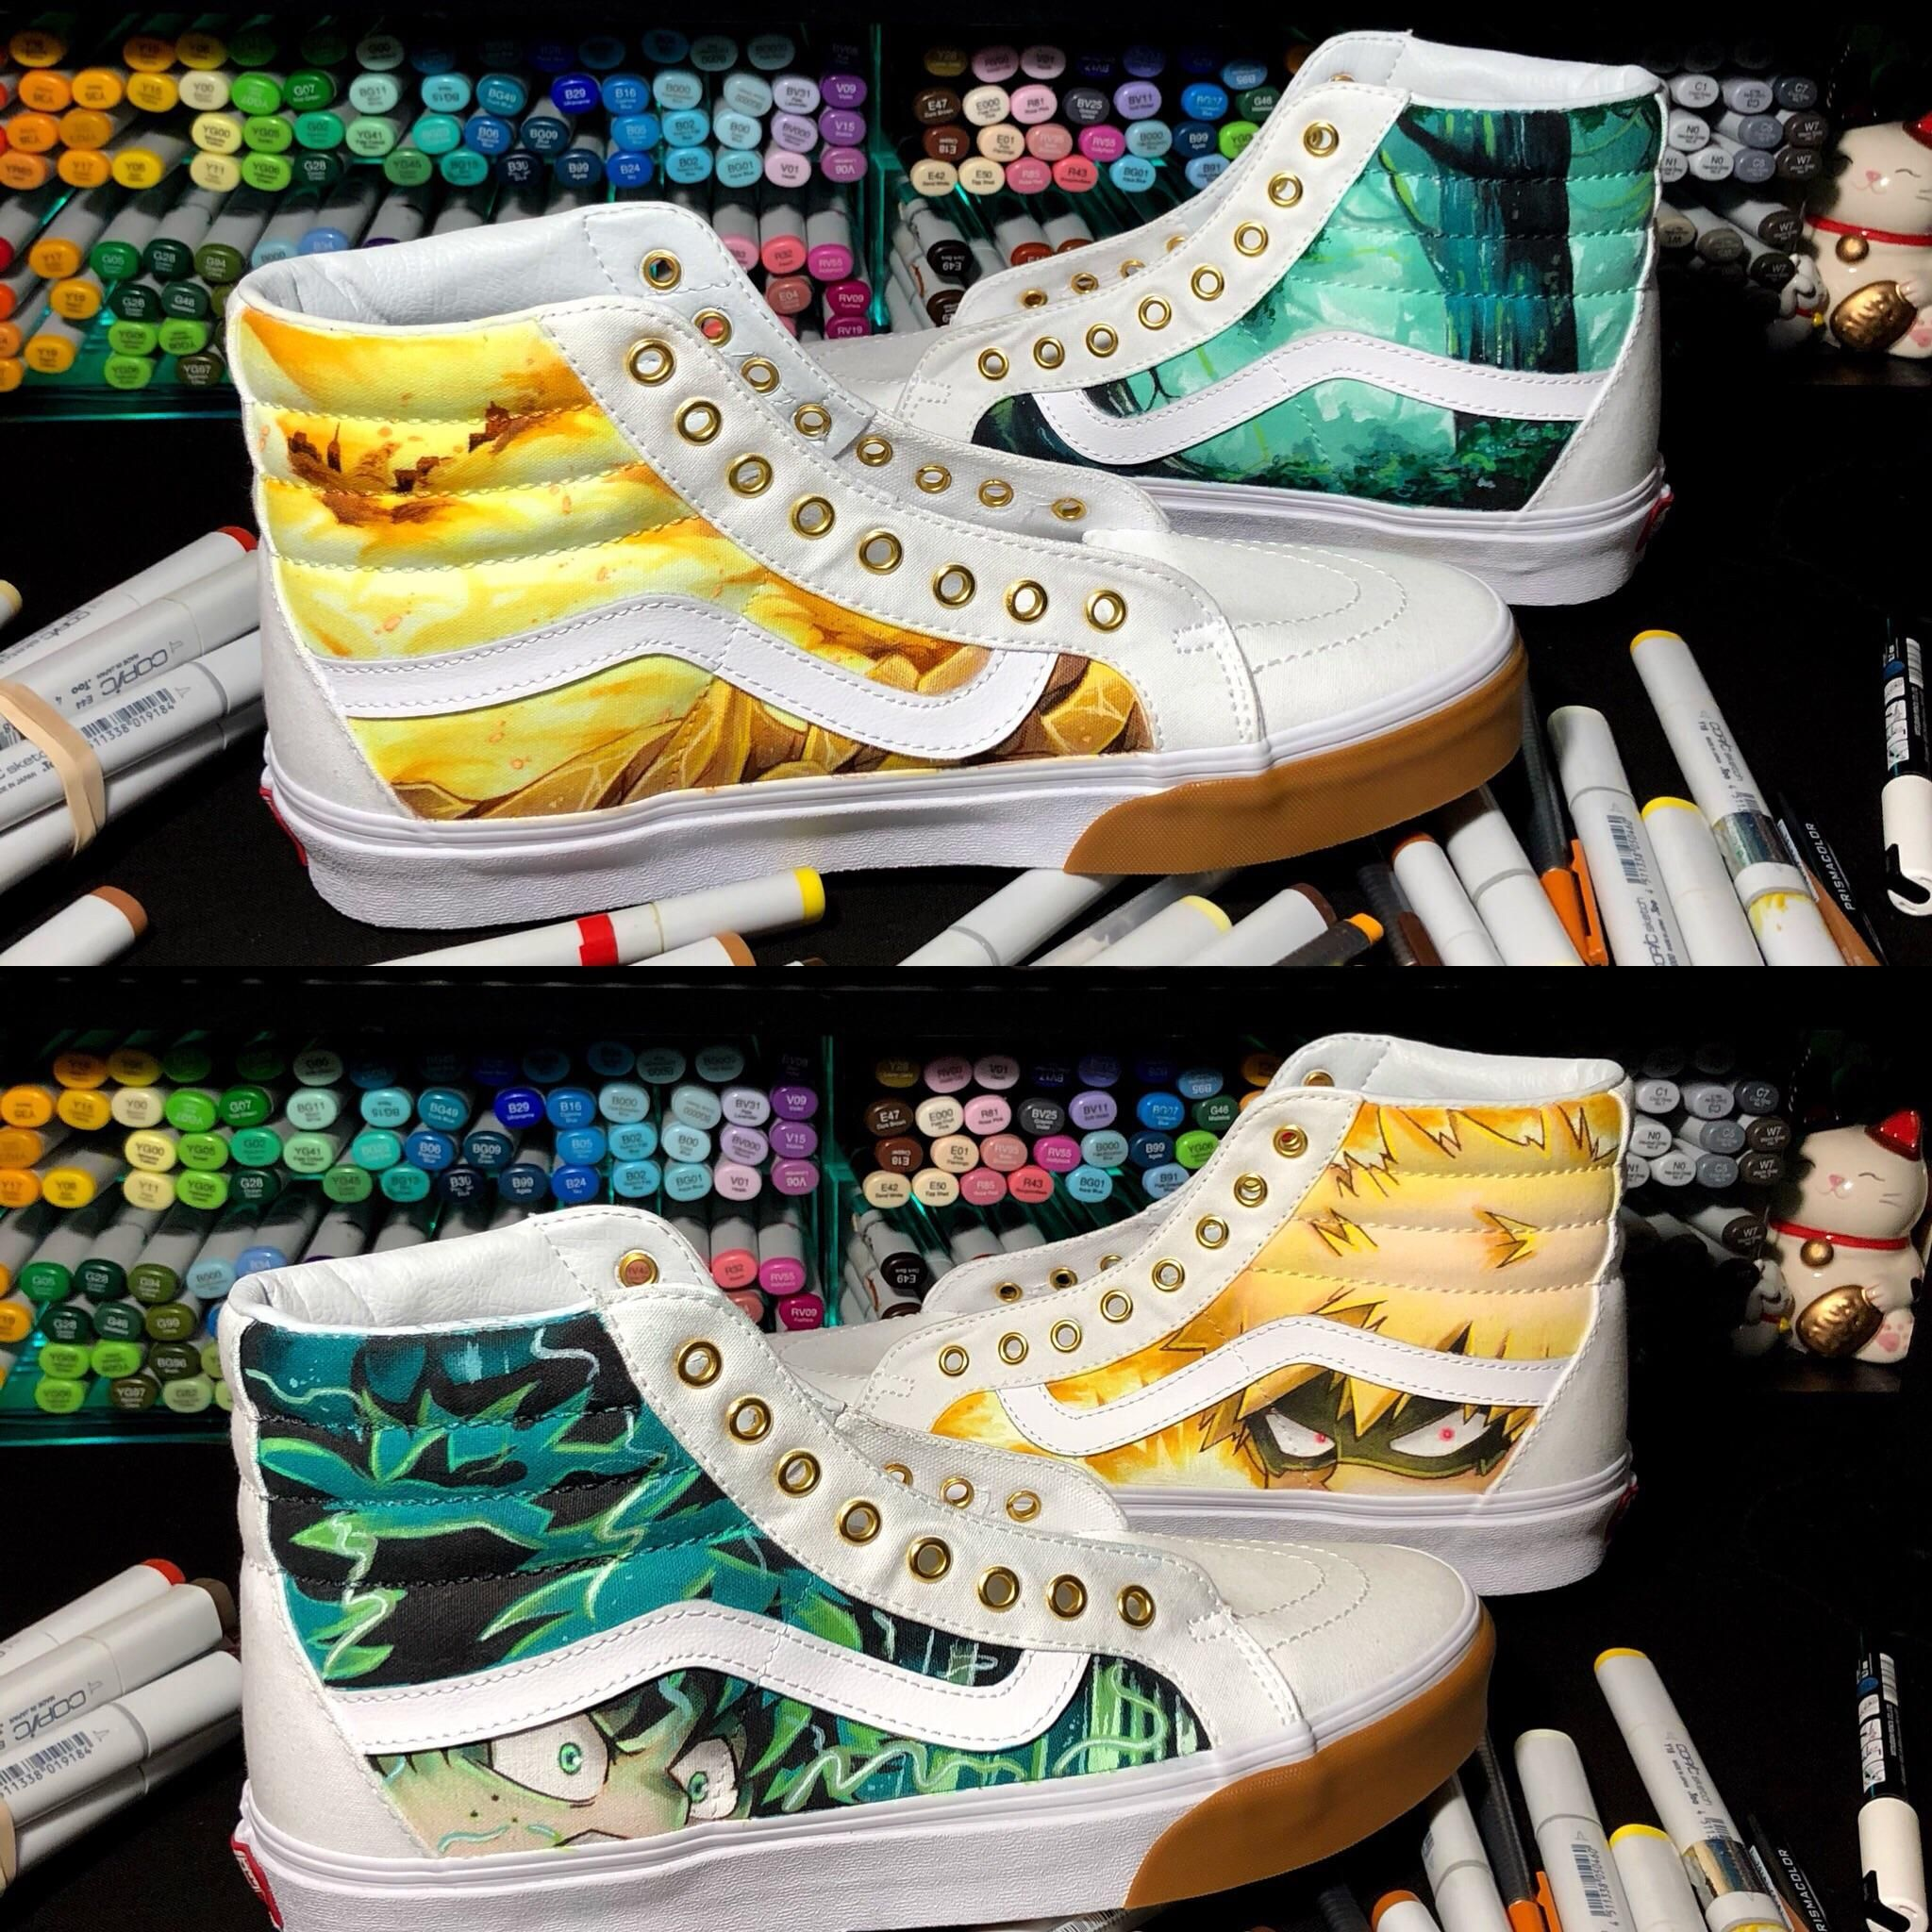 My hero academia merchandise by Summer on VANS Anime